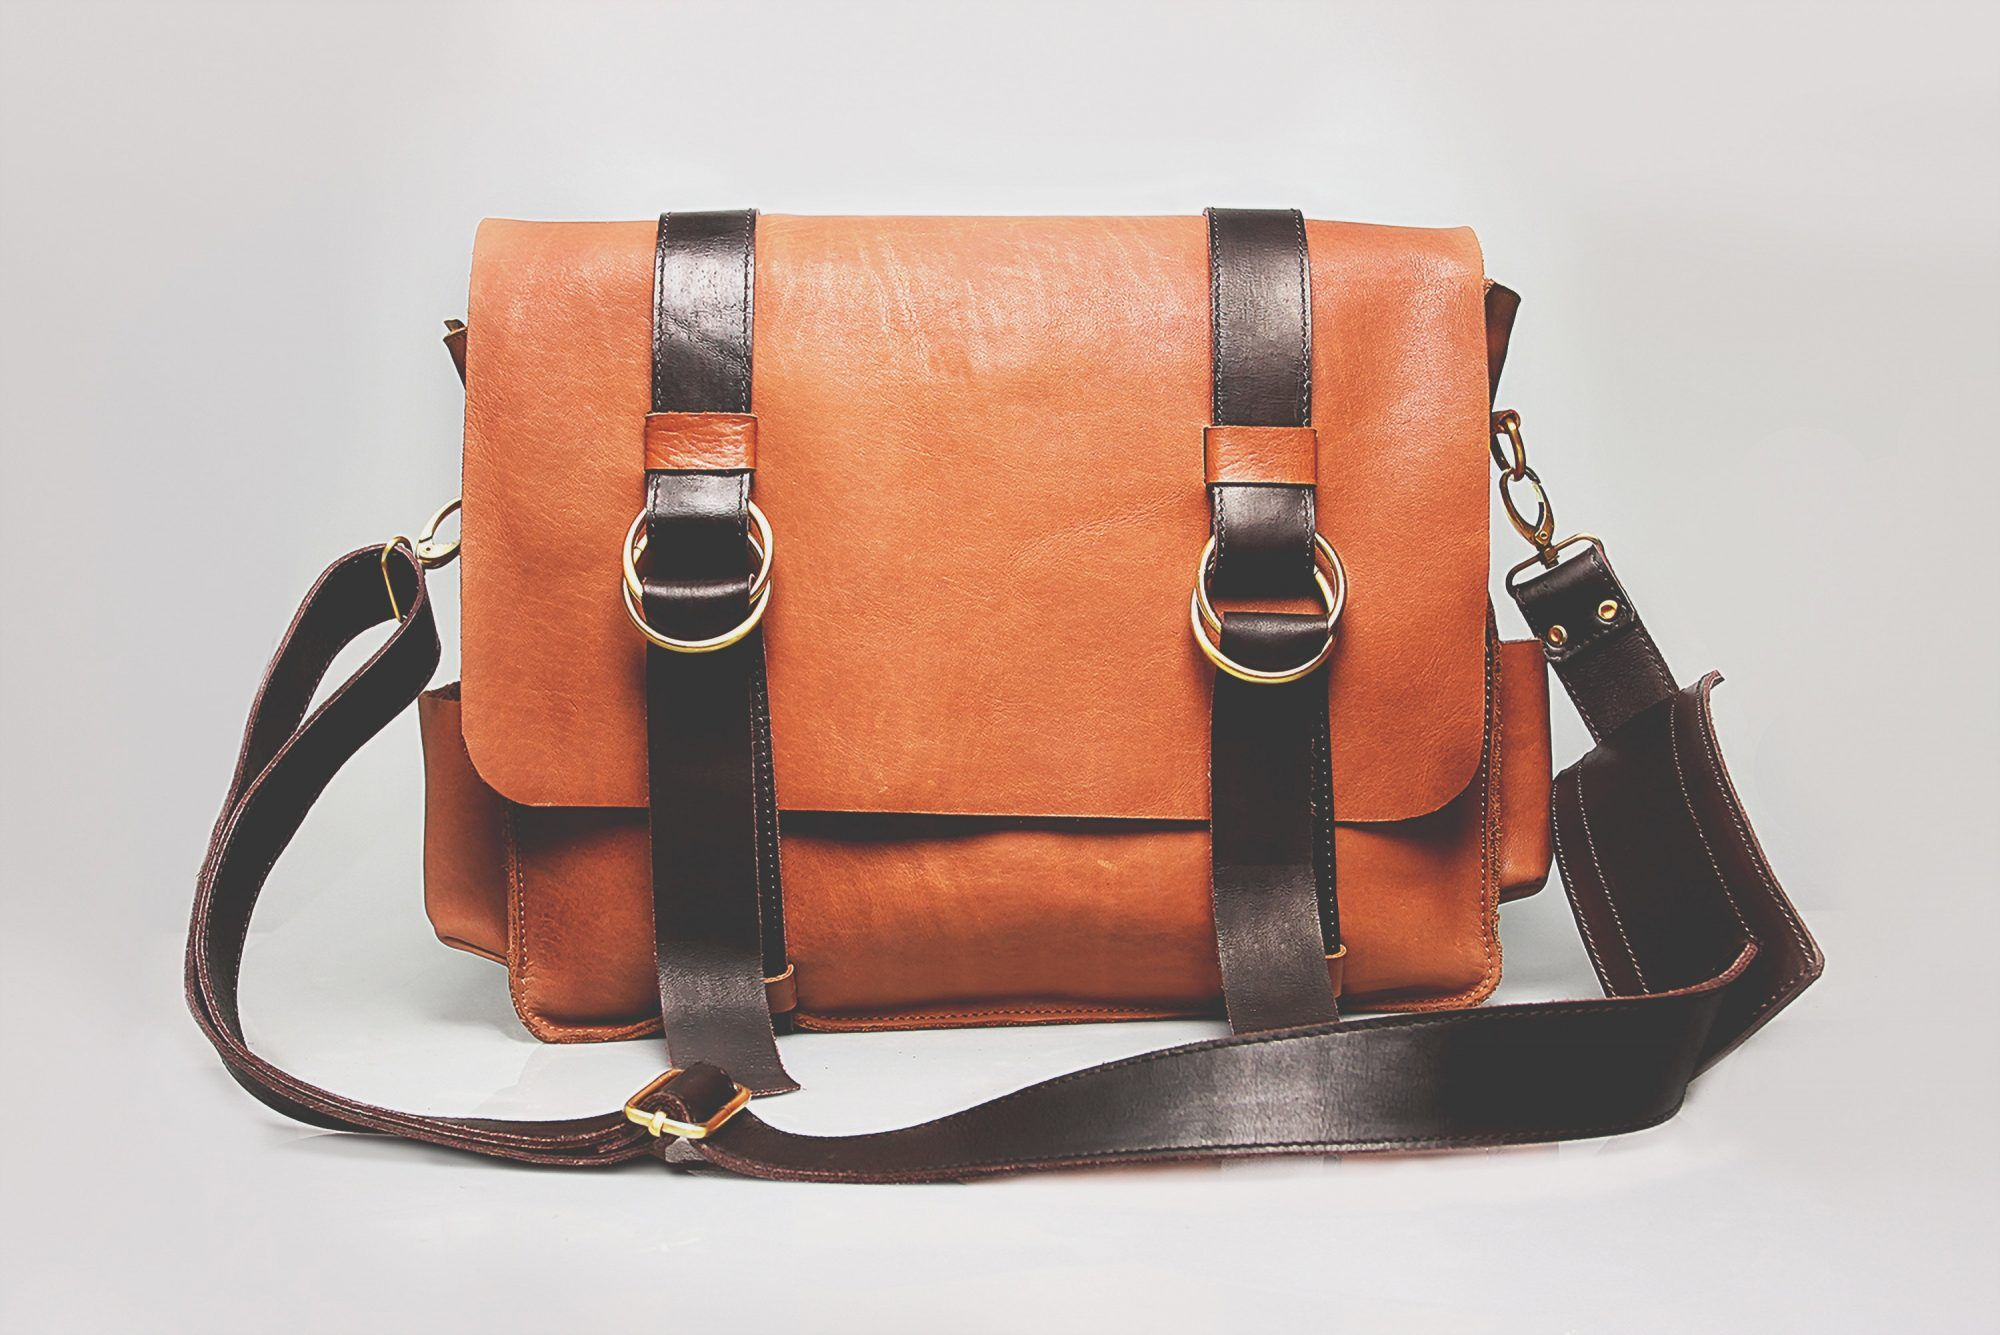 Leather Handbags Fashion Accessories